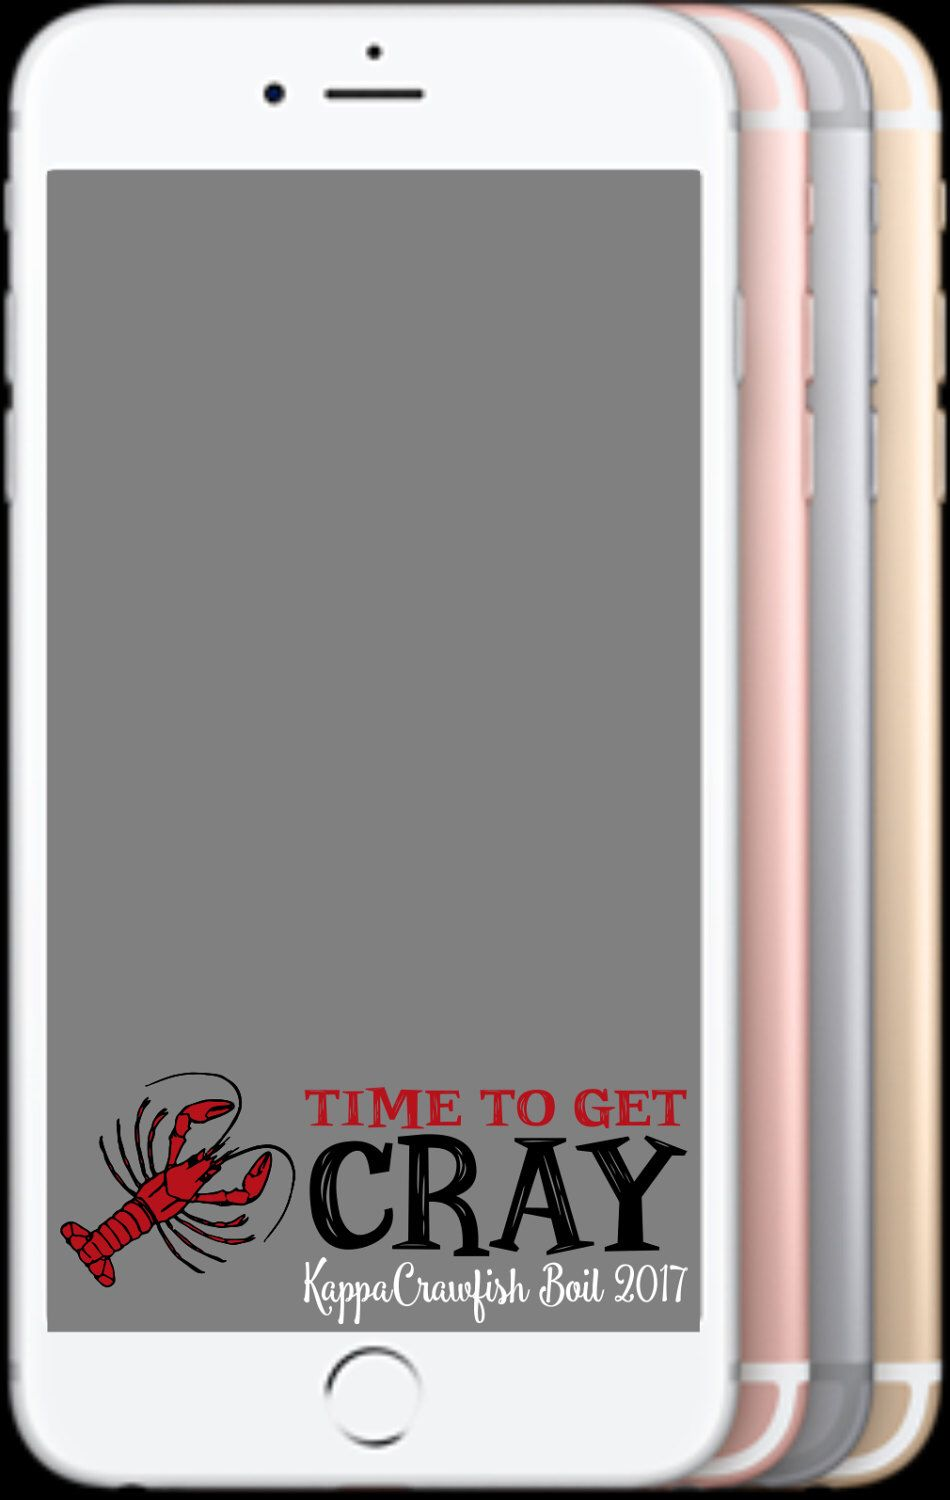 custom event crawfish boils sorority fraternity birthday day reunion snapchat geofilter time to [ 950 x 1500 Pixel ]